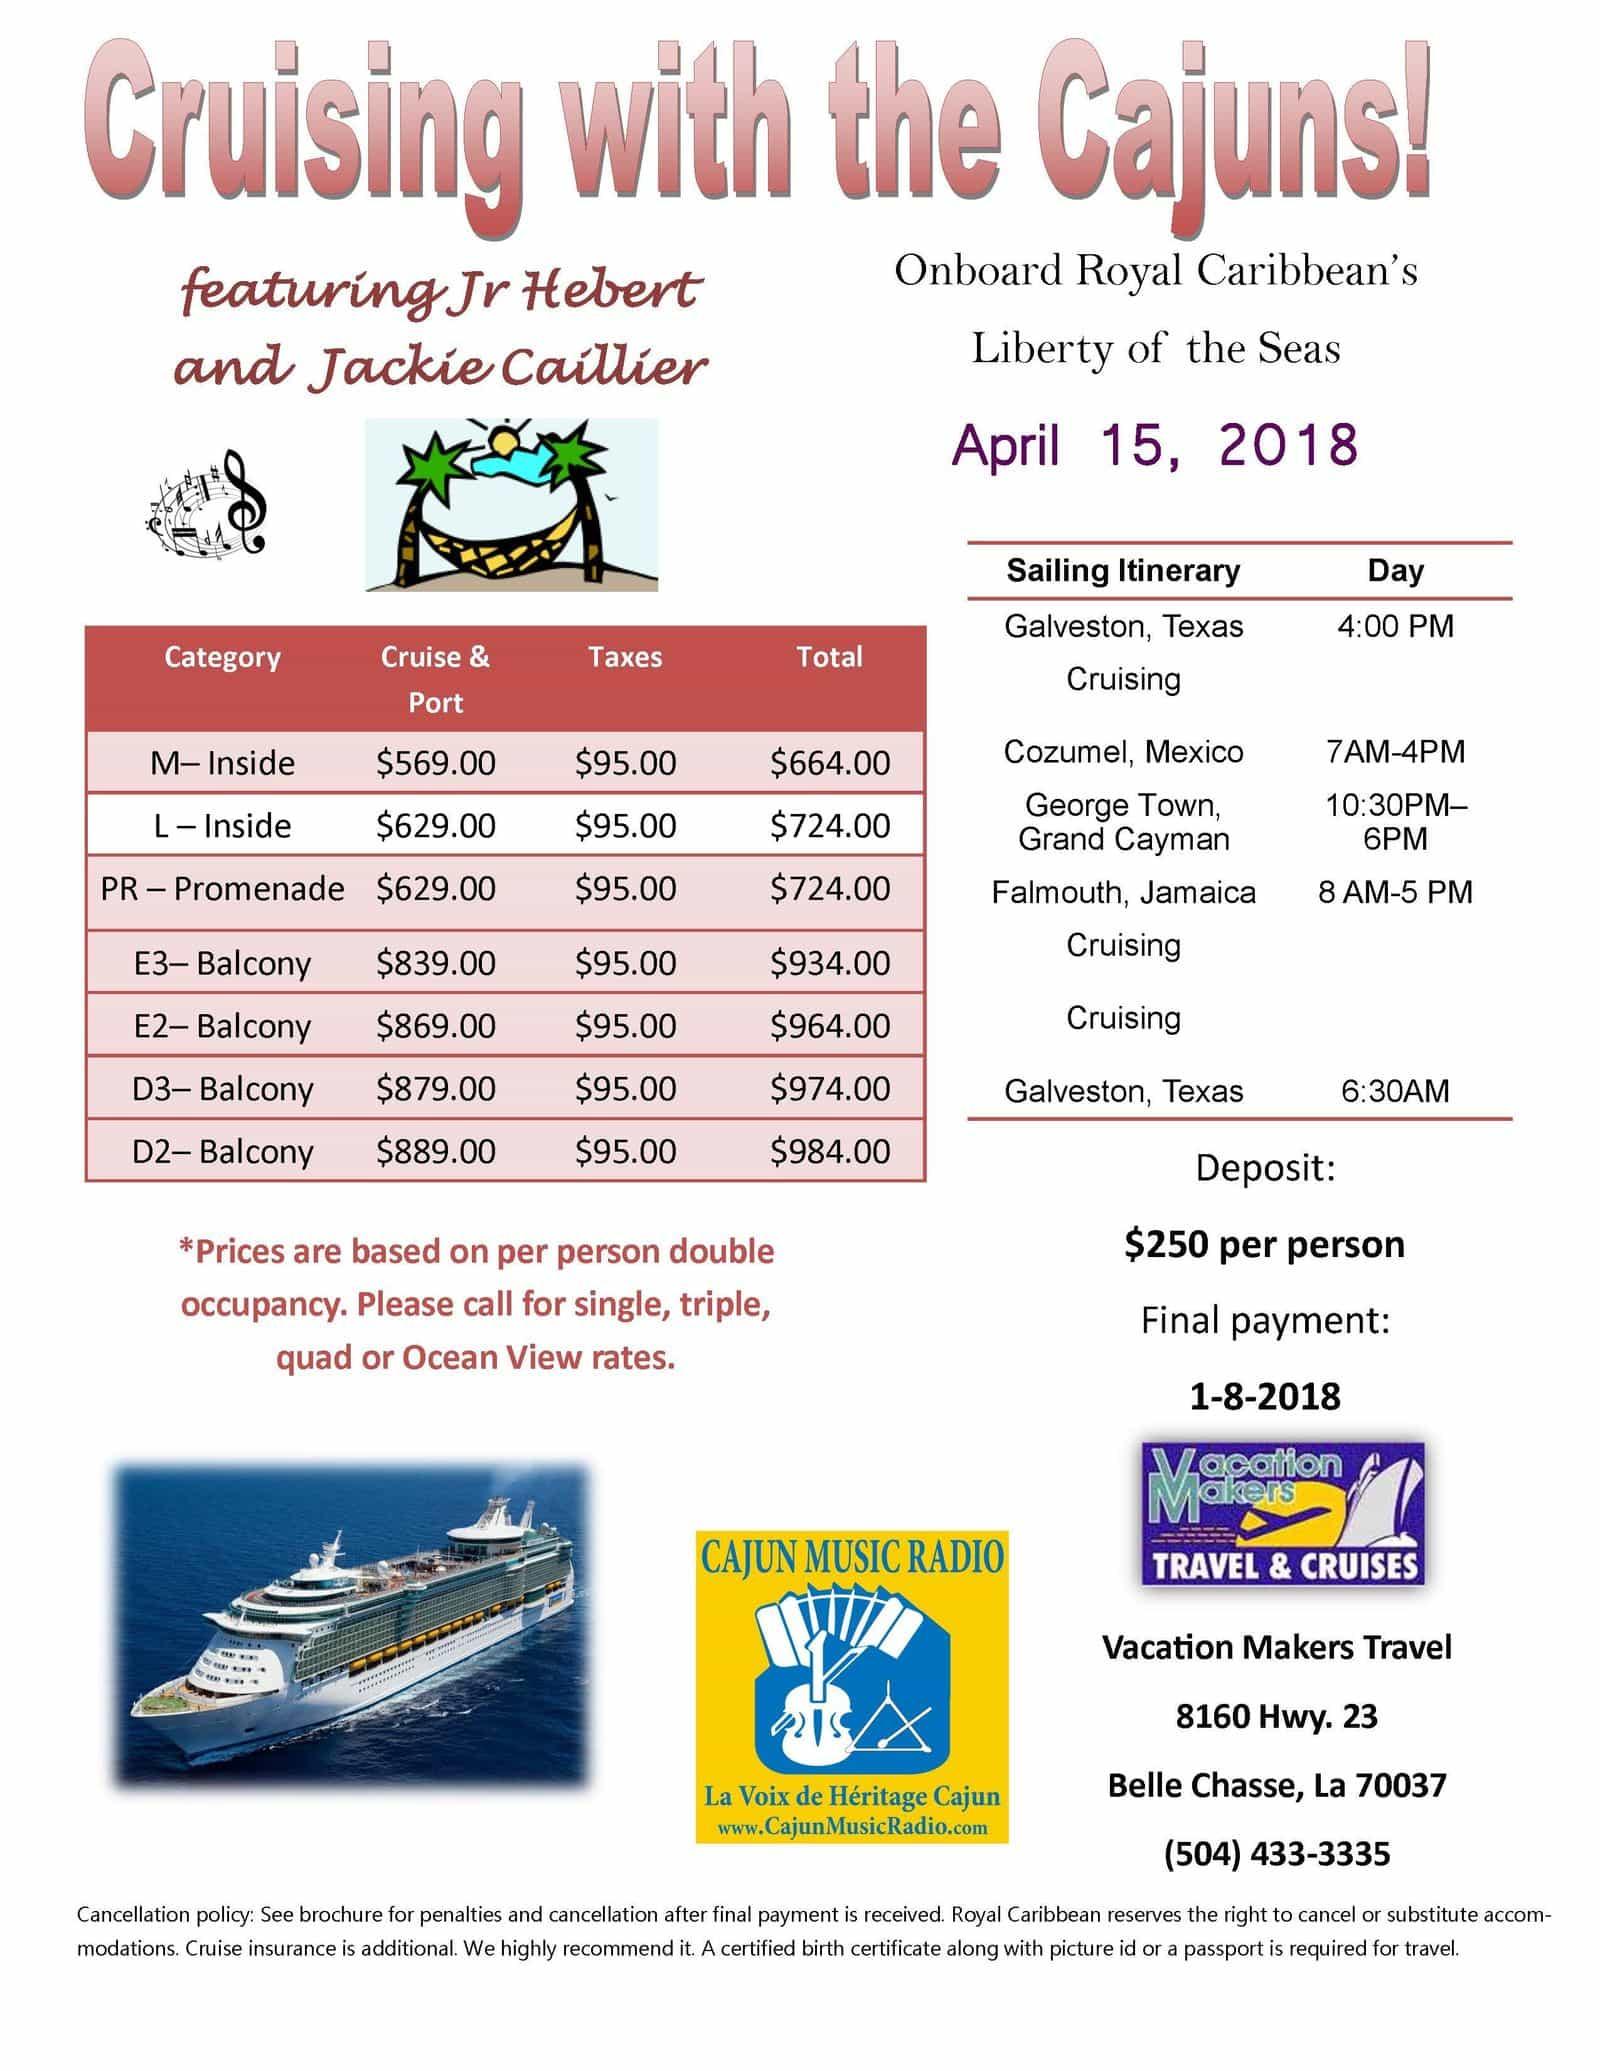 Details for the Cruising with the Cajuns cruise